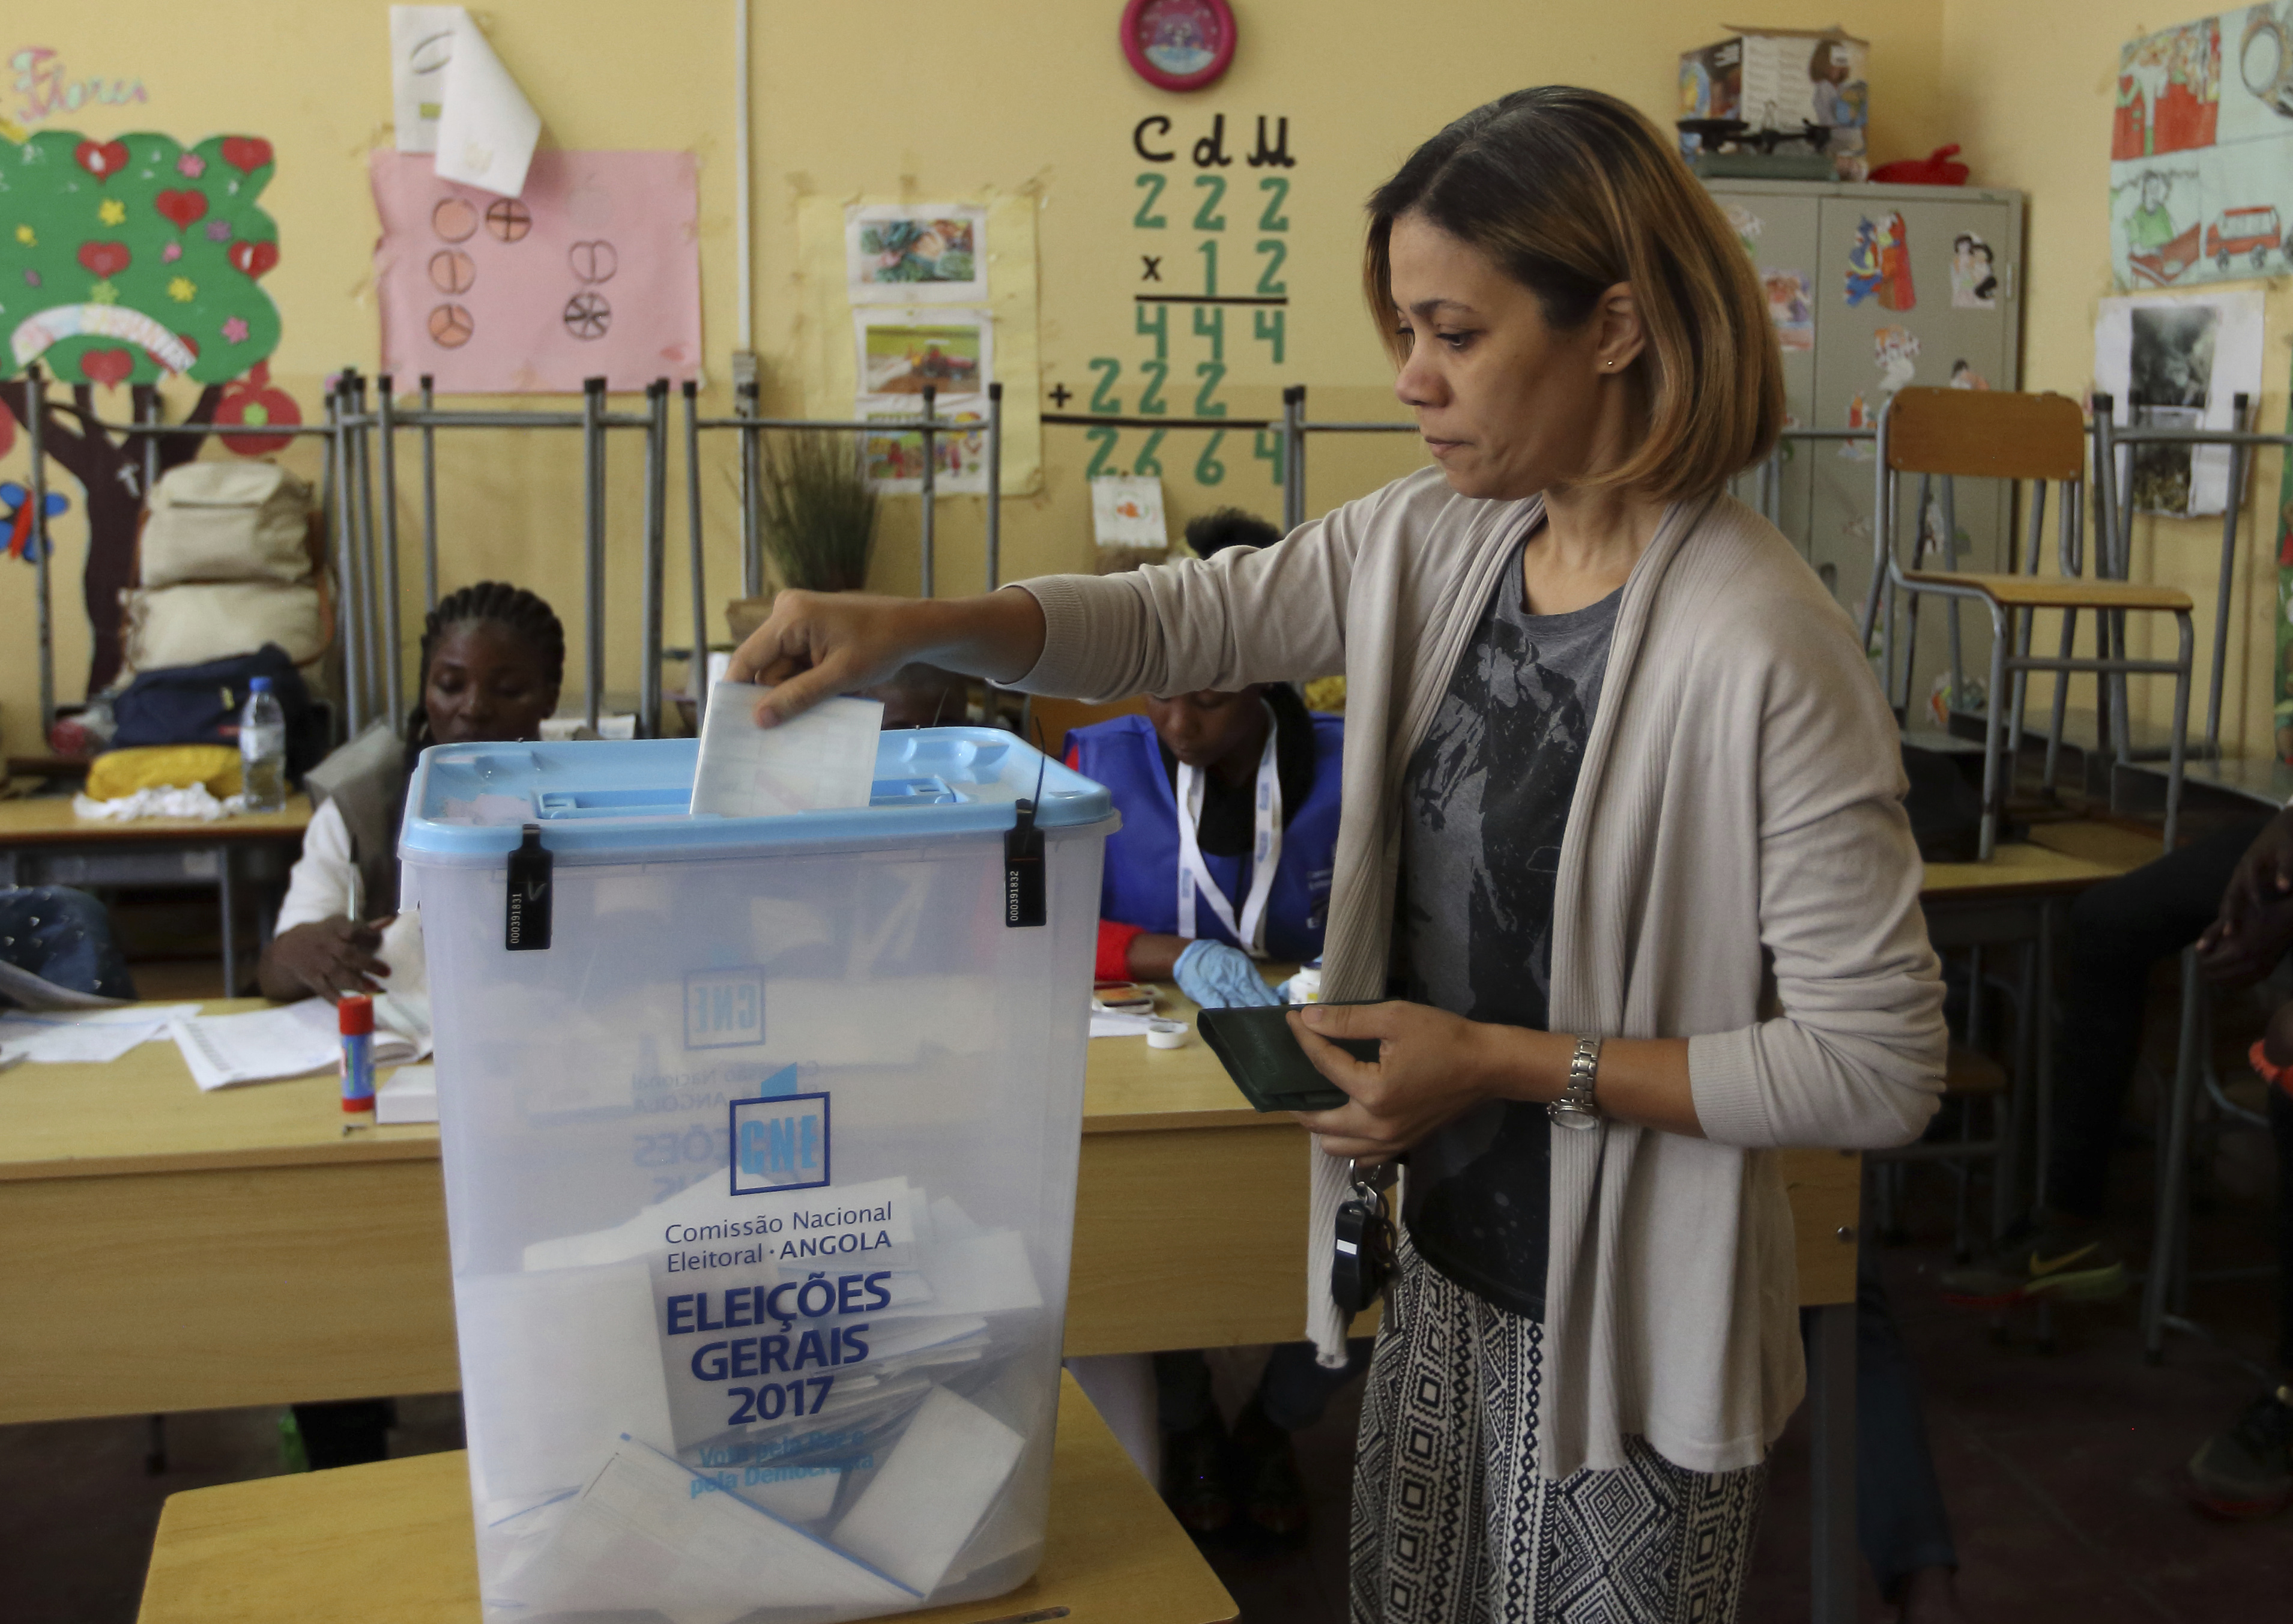 A voter casts her ballot in elections in Luanda, Angola, Aug. 23, 2017.